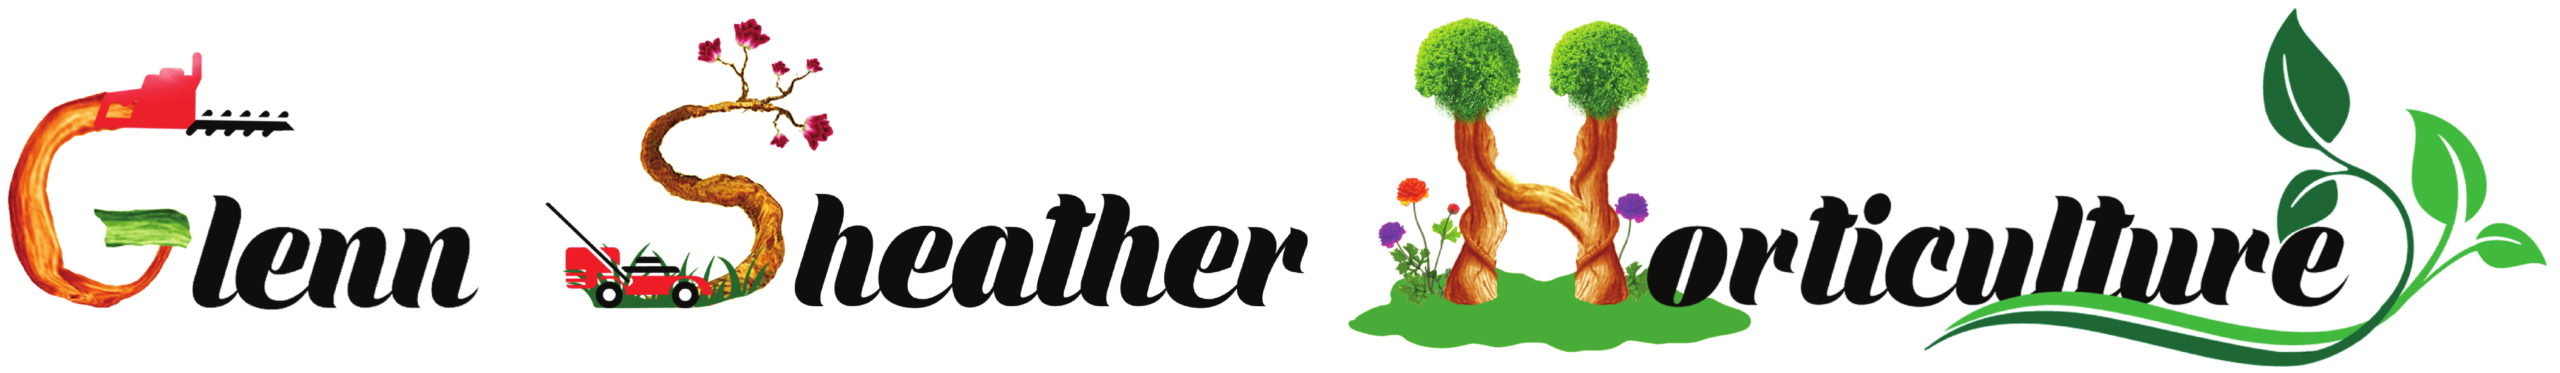 Glen Sheather Horticulture - Logo - Business in Networking Group